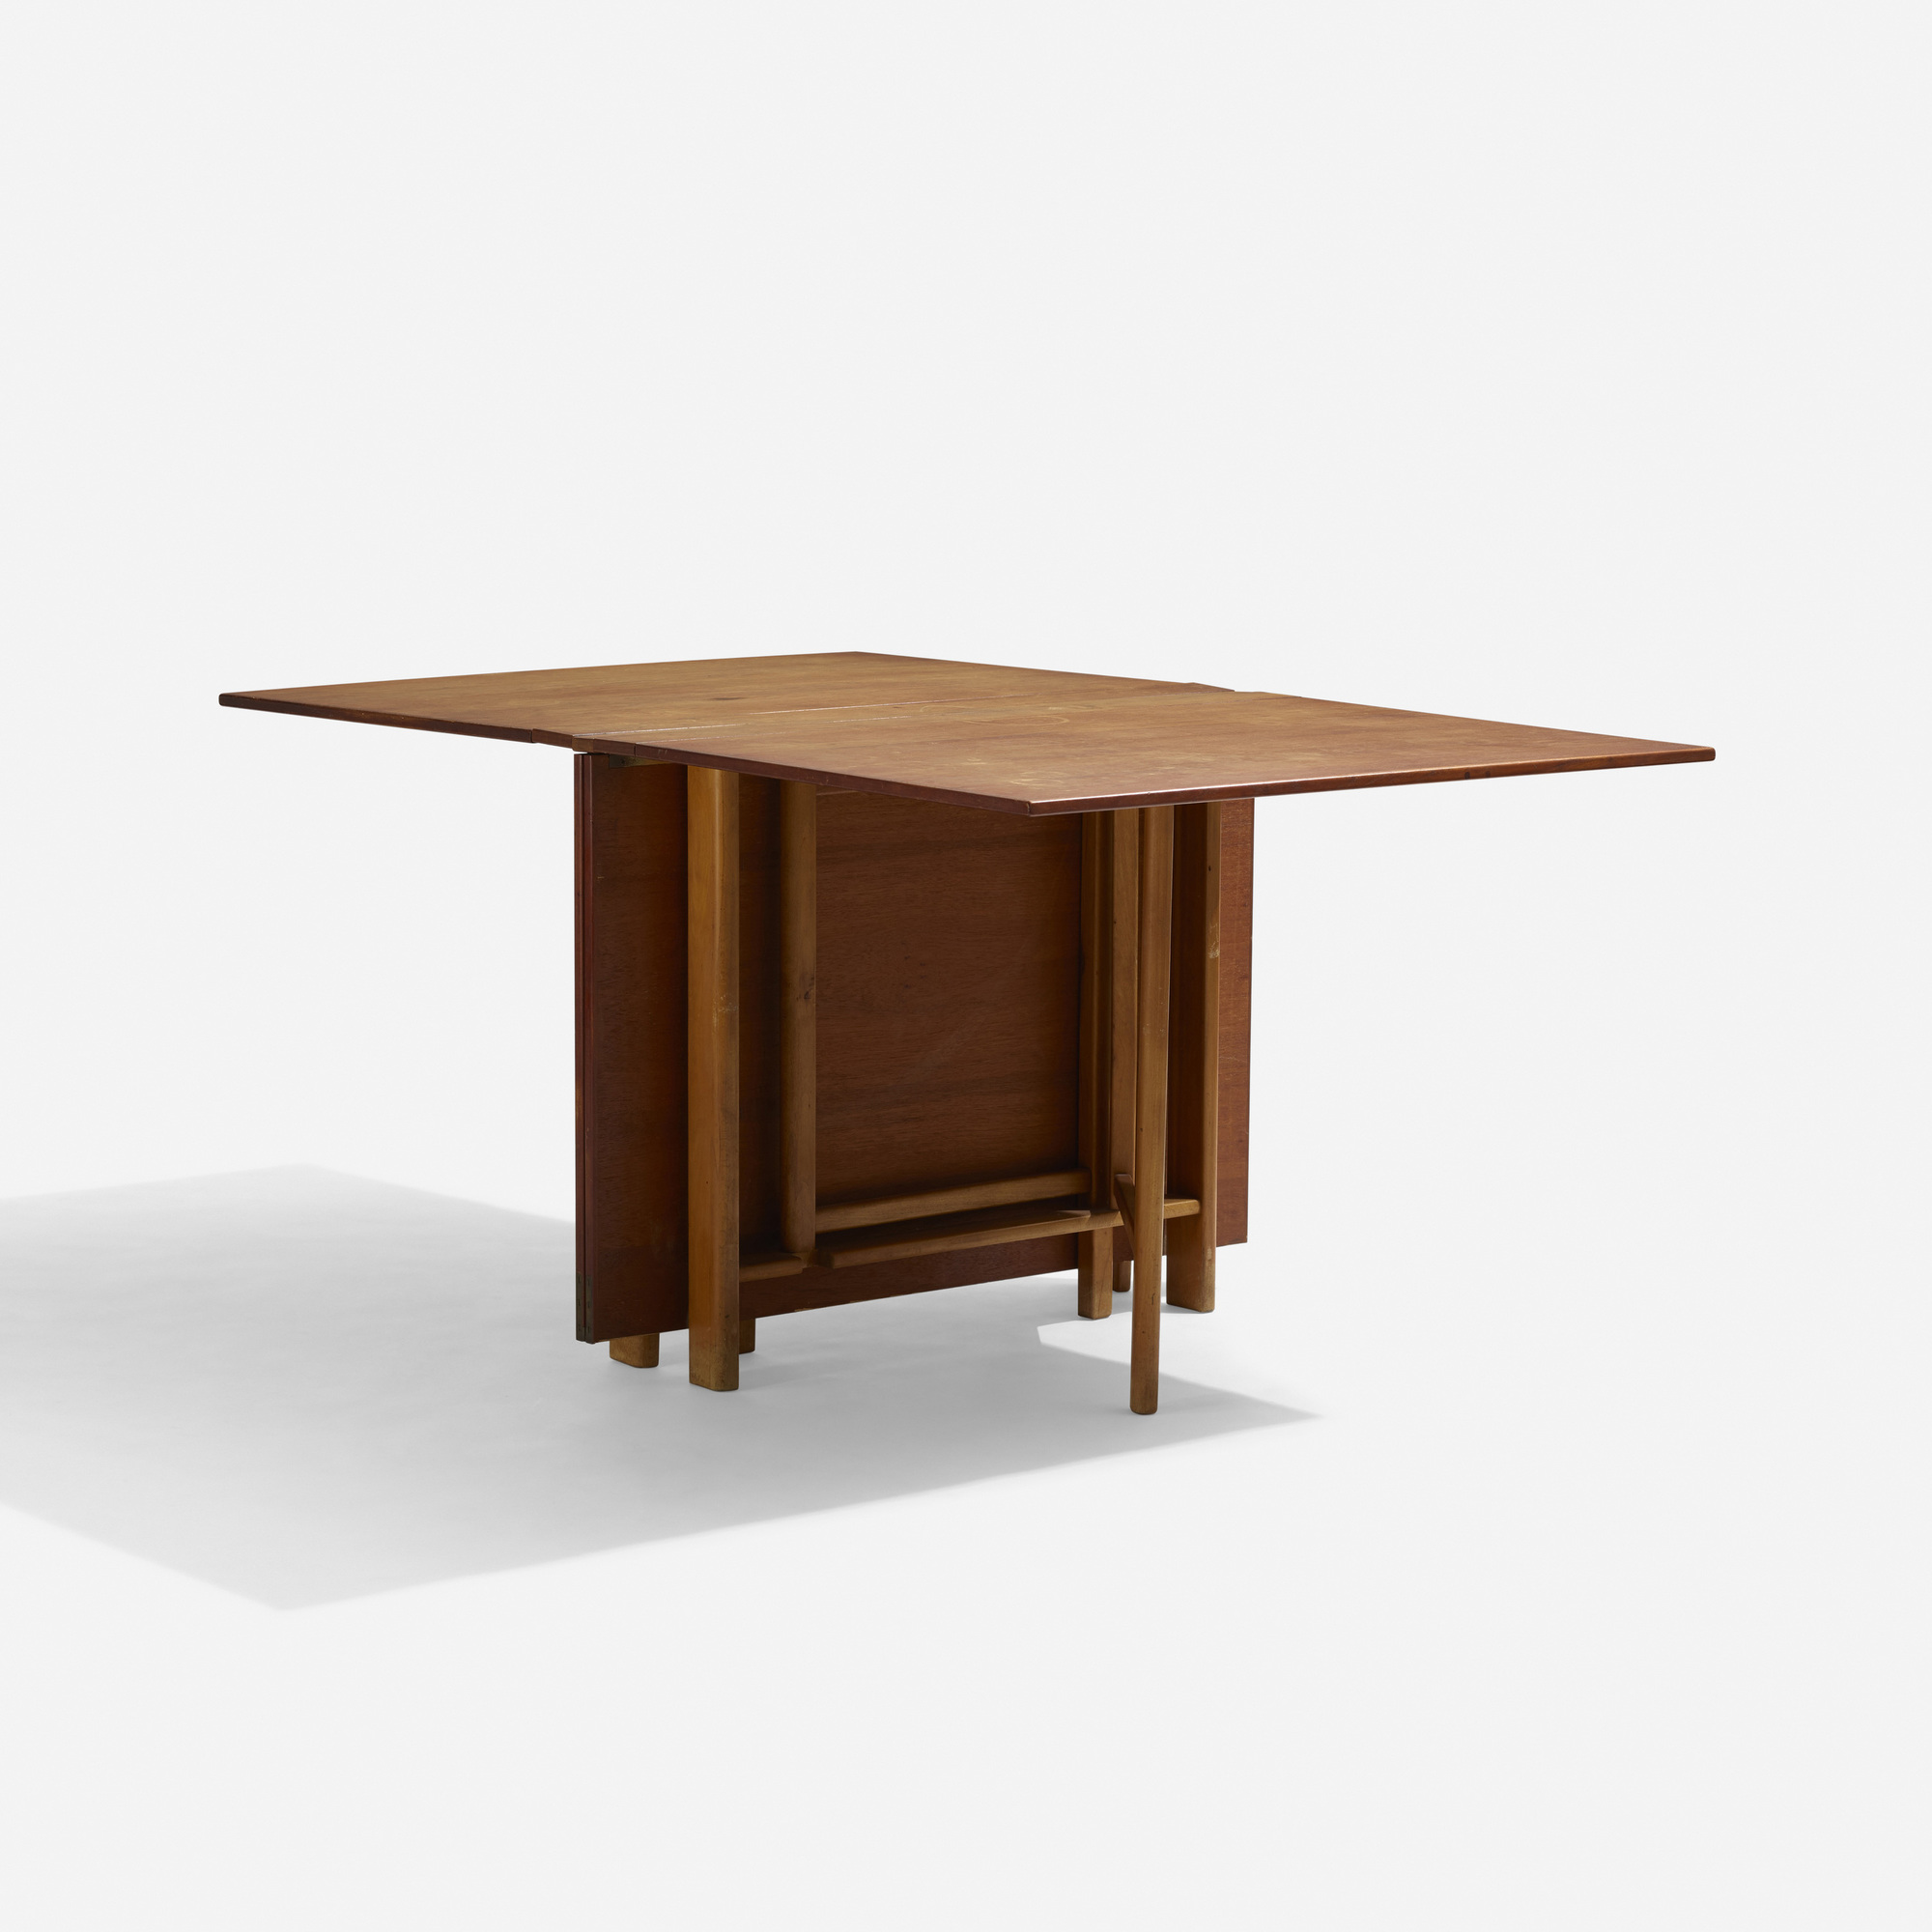 267: Bruno Mathsson / Maria folding table (2 of 5)